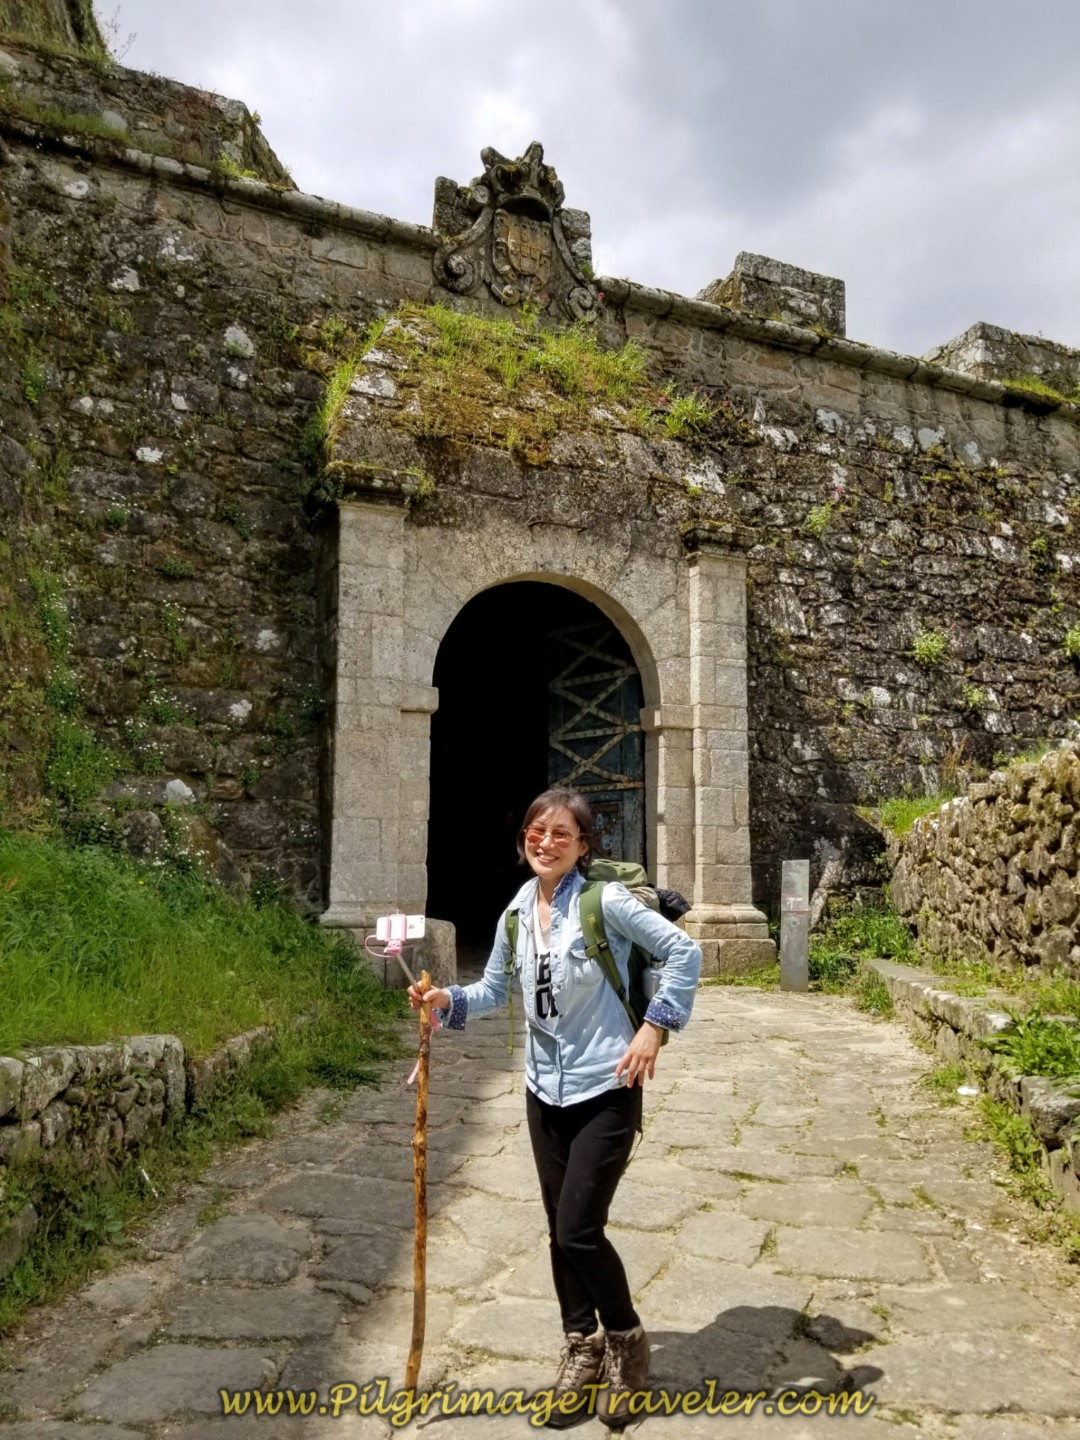 Mira at the Porta da Gabiarra, leaving Valença on day nineteen on the Central Route of the Portuguese Camino